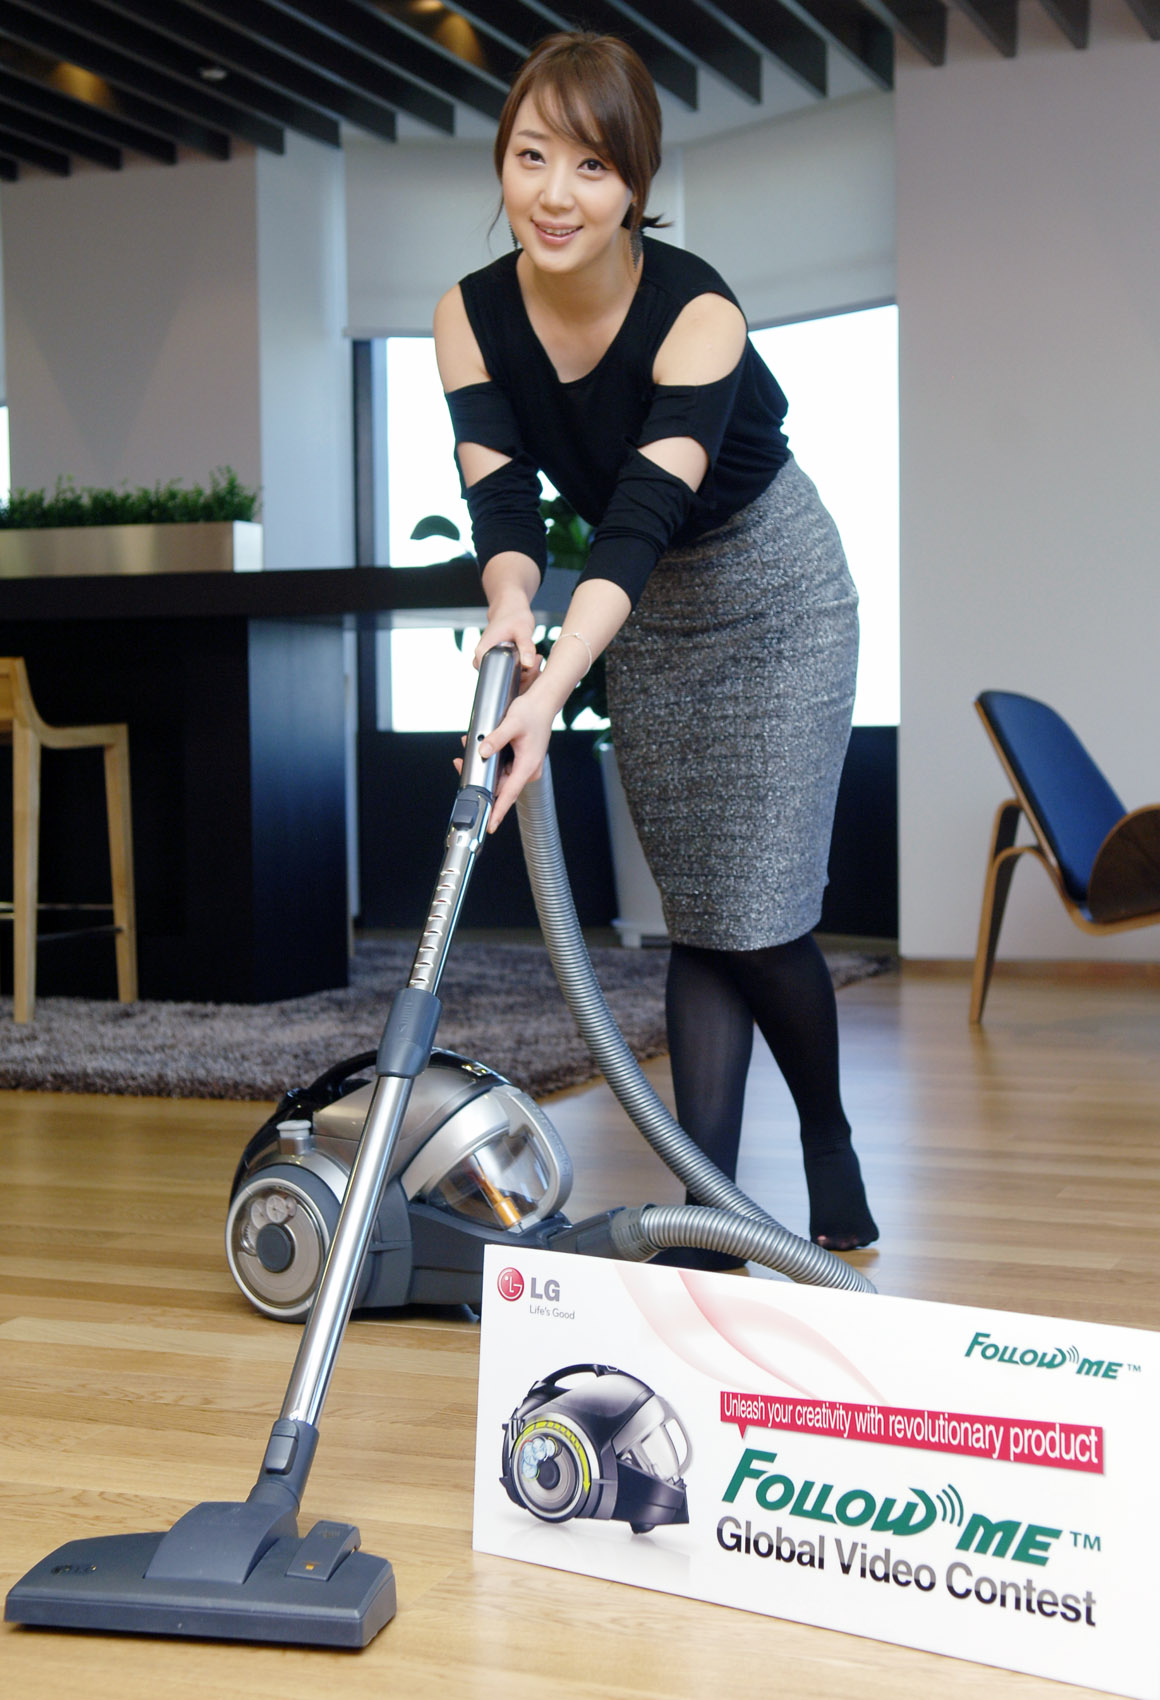 A woman posing and pushing the vacuum cleaner with the banner of 'Follow Me Global Video Contest.'